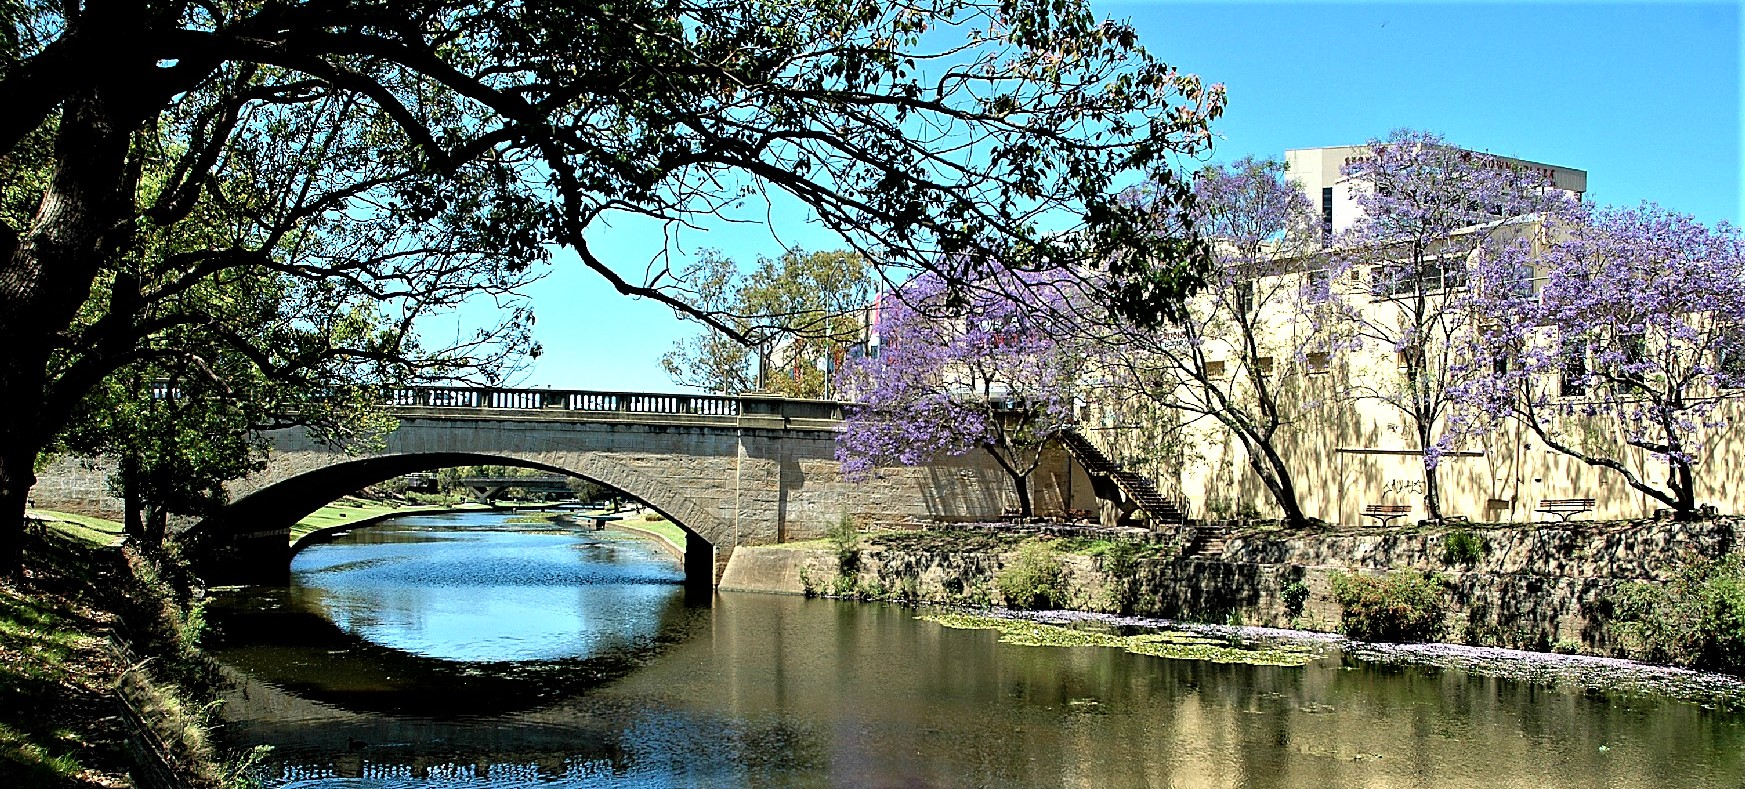 Welcome to our Parramatta History and Heritage website!